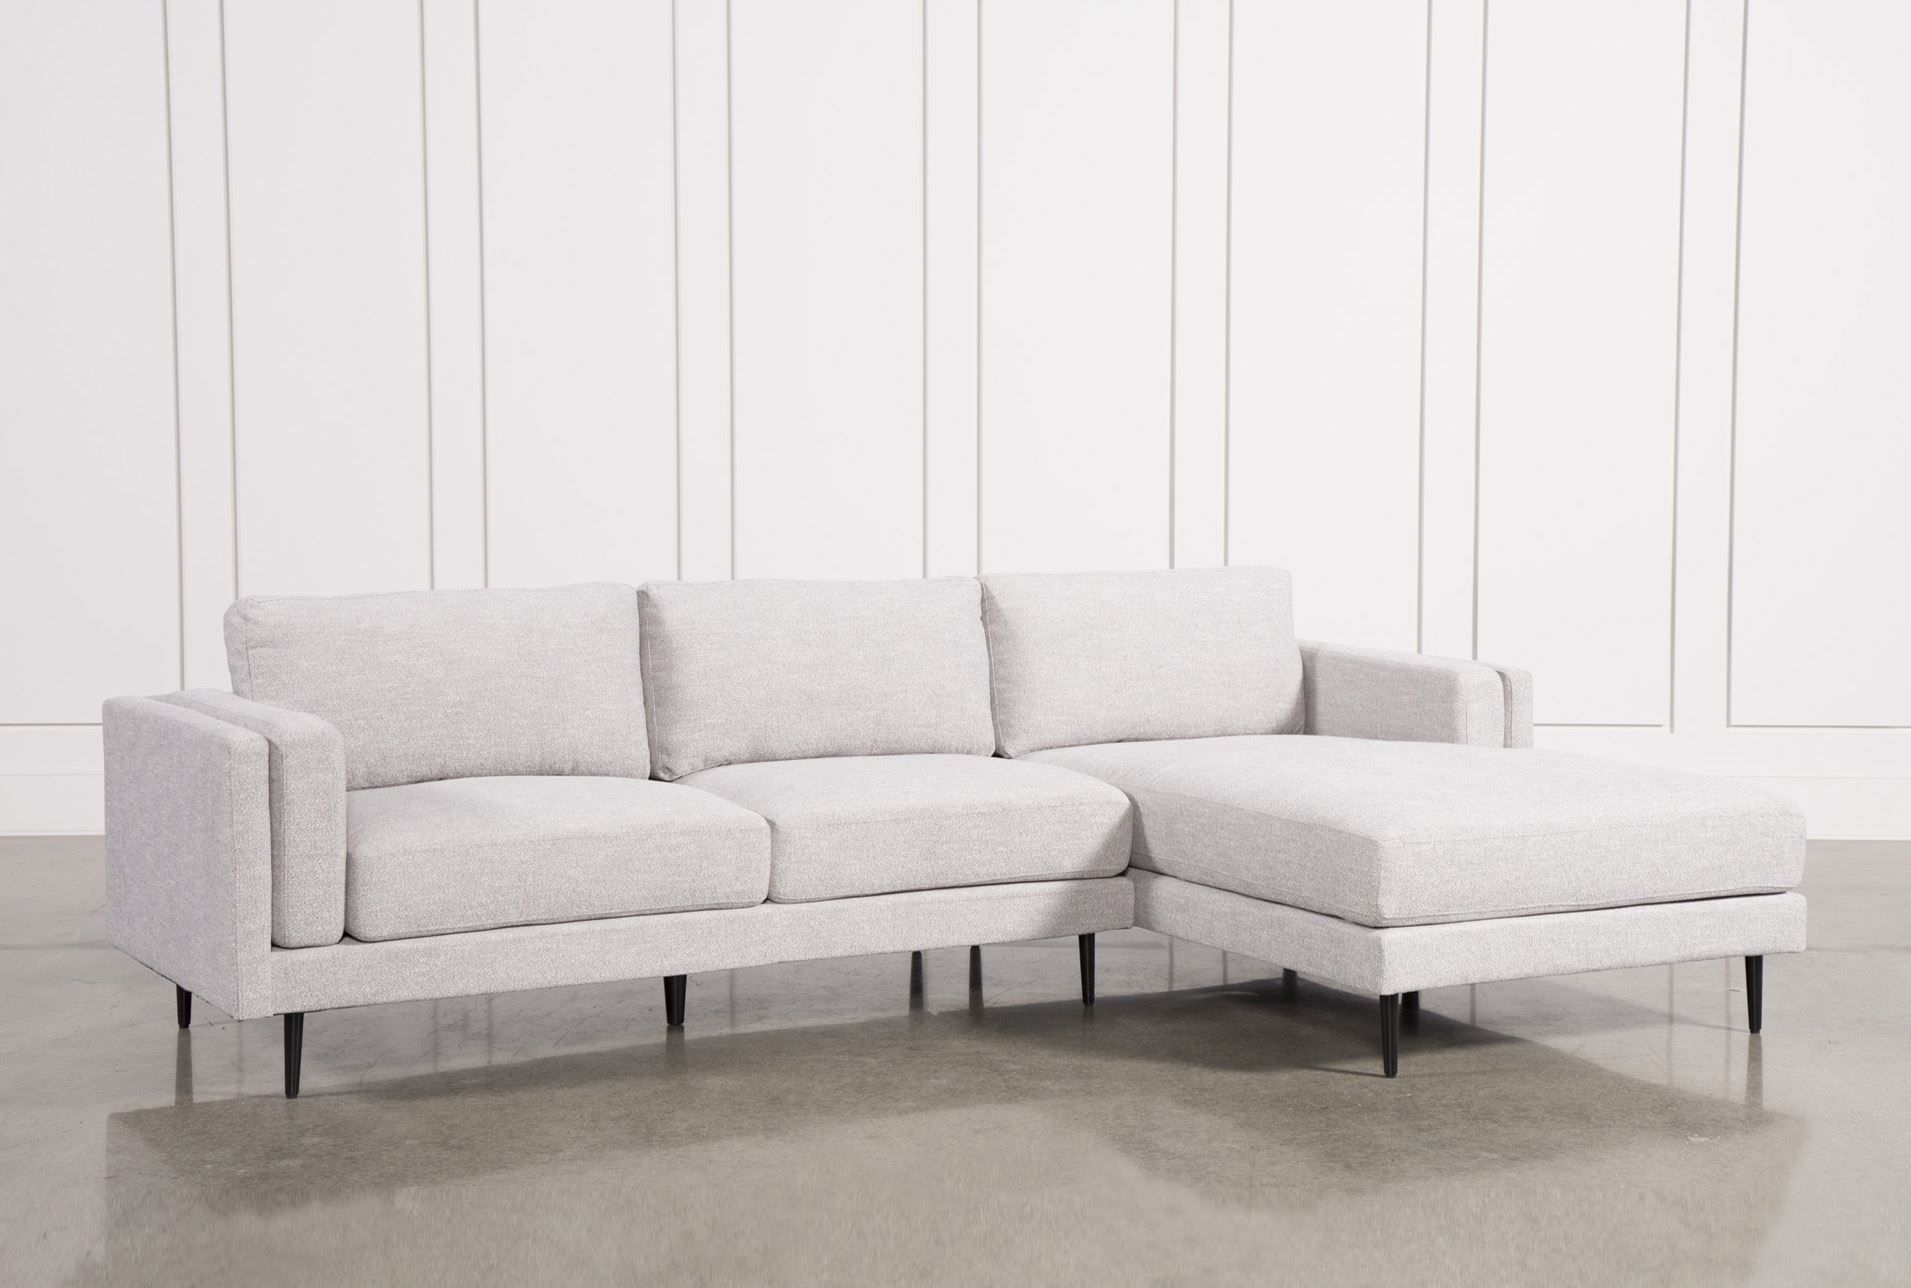 Aquarius Light Grey 2 Piece Sectional W/raf Chaise | قطع اثاث مميزة pertaining to Marcus Grey 6 Piece Sectionals With  Power Headrest & Usb (Image 6 of 30)